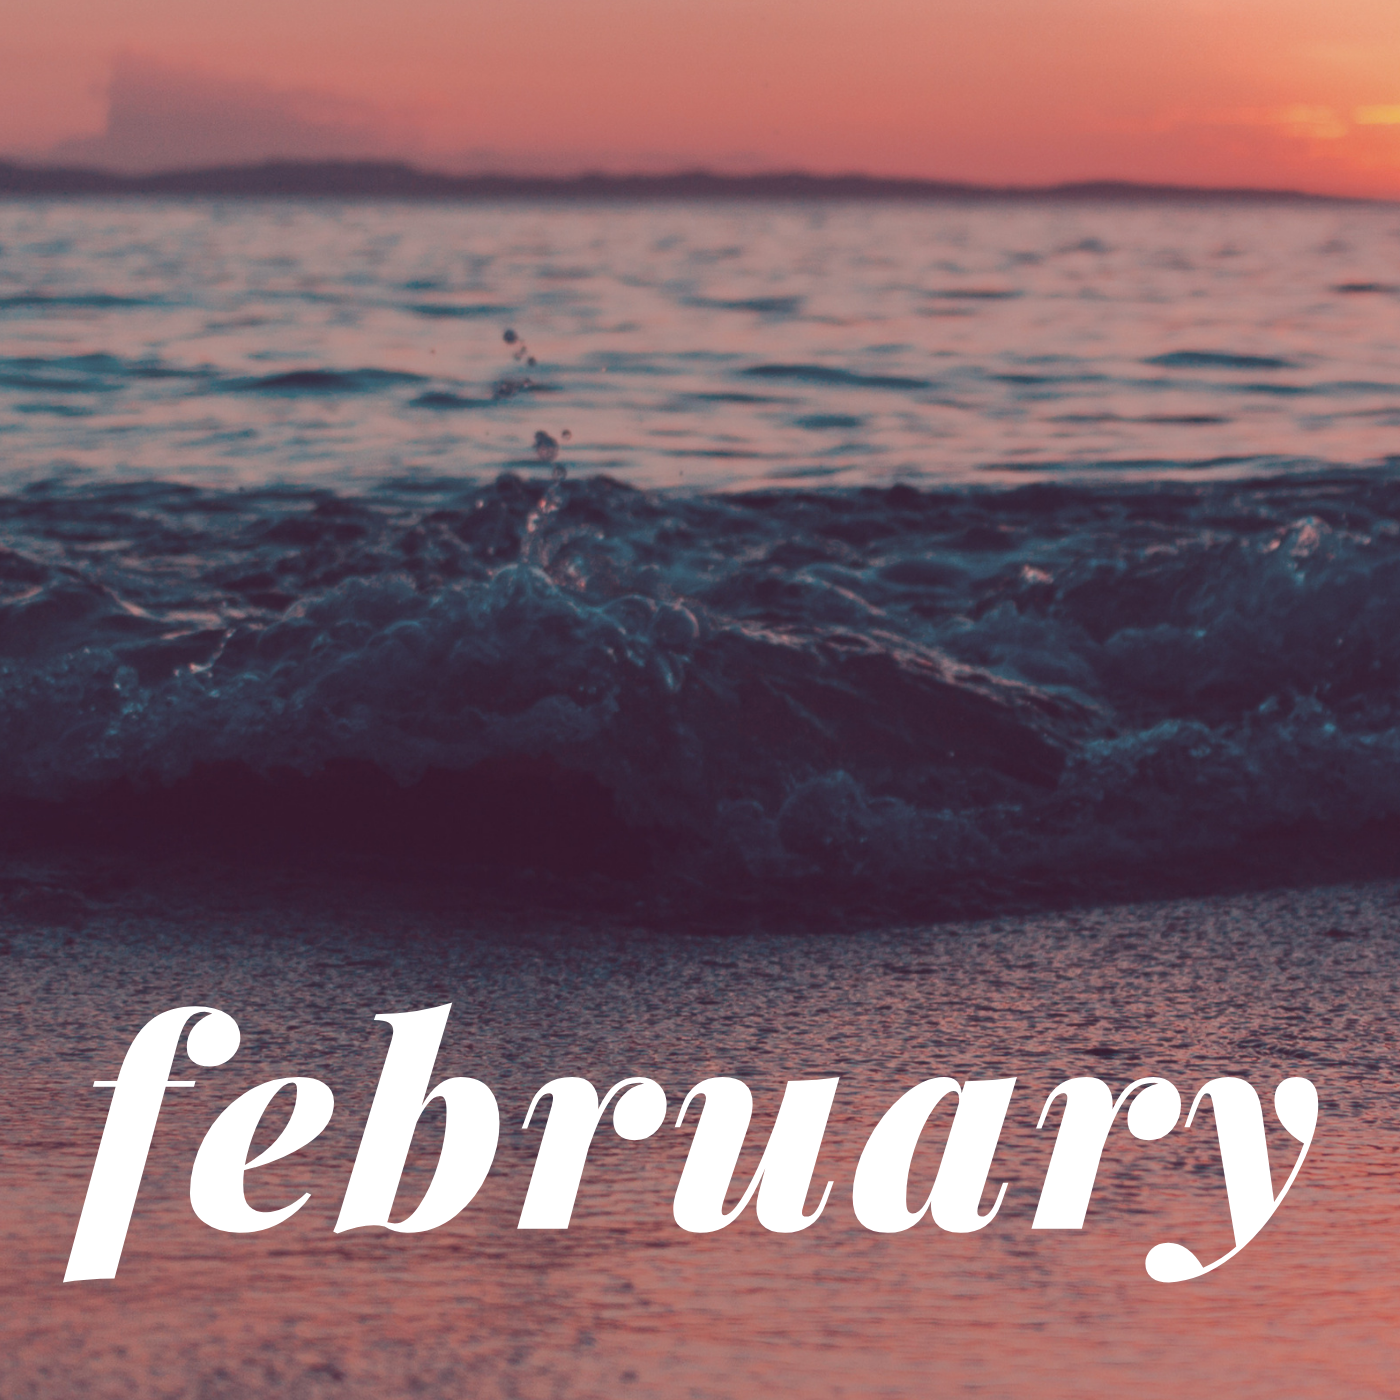 a square image of waves breaking on a beach in pink tones reading february at the bottom